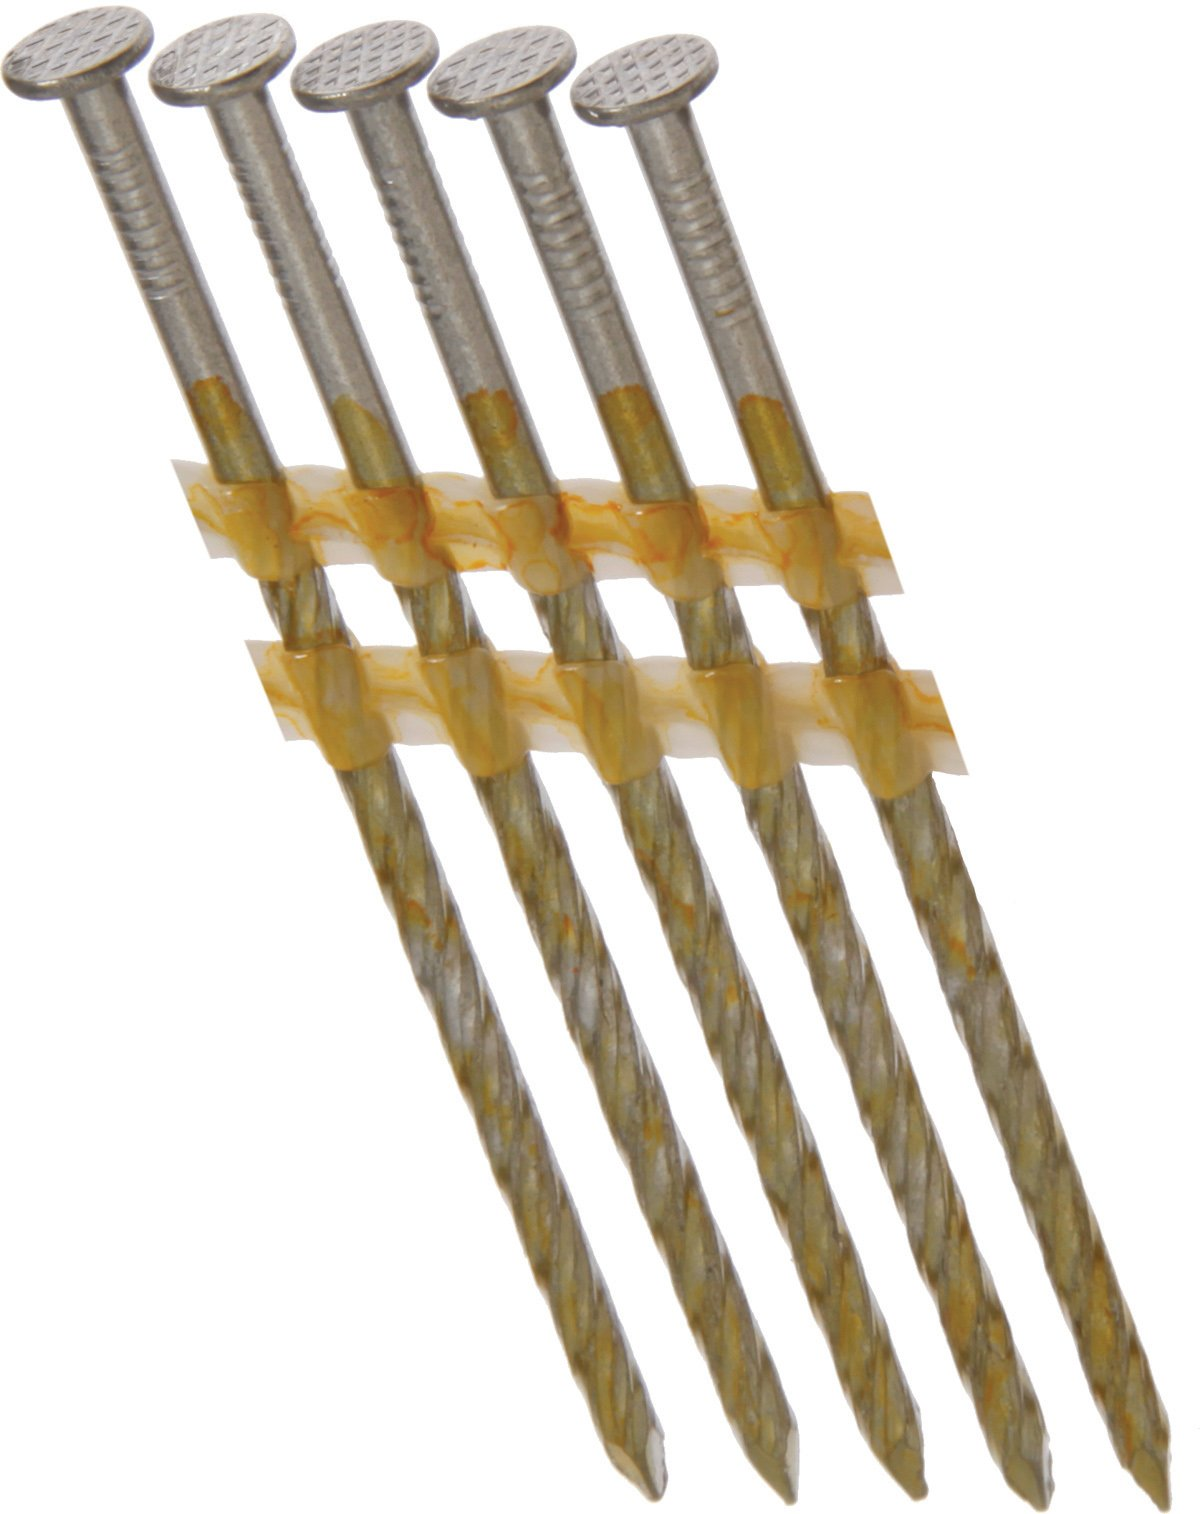 Grip Rite Prime Guard Max MAXC62907 20-22 Degree Plastic Strip 3-1/4-Inch by .131-Inch Screw Shank, Stainless Steel Nails 1,000 Per box